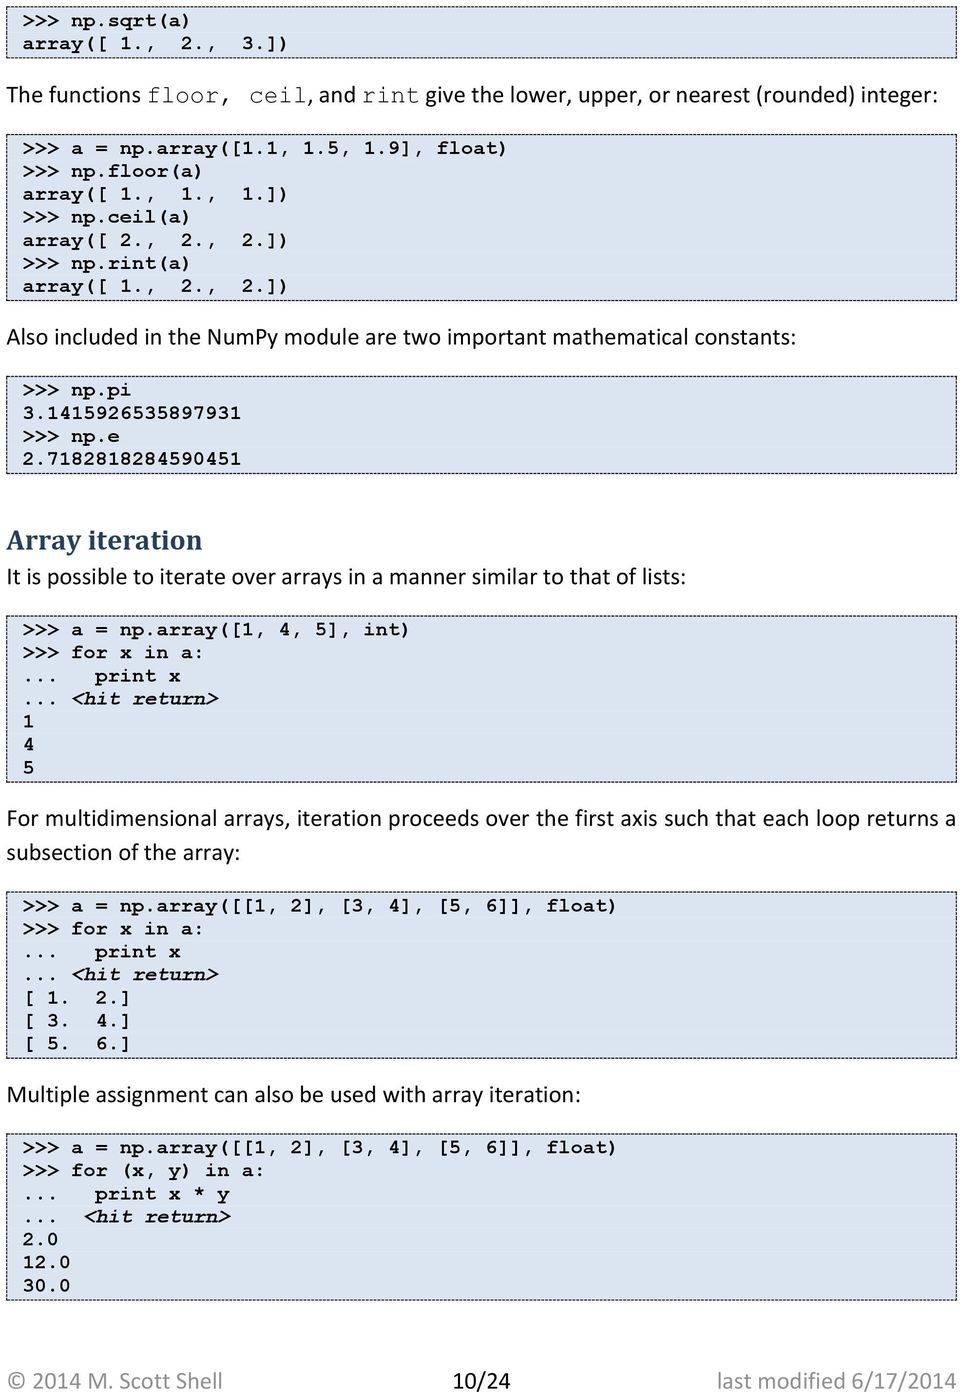 An introduction to Numpy and Scipy - PDF